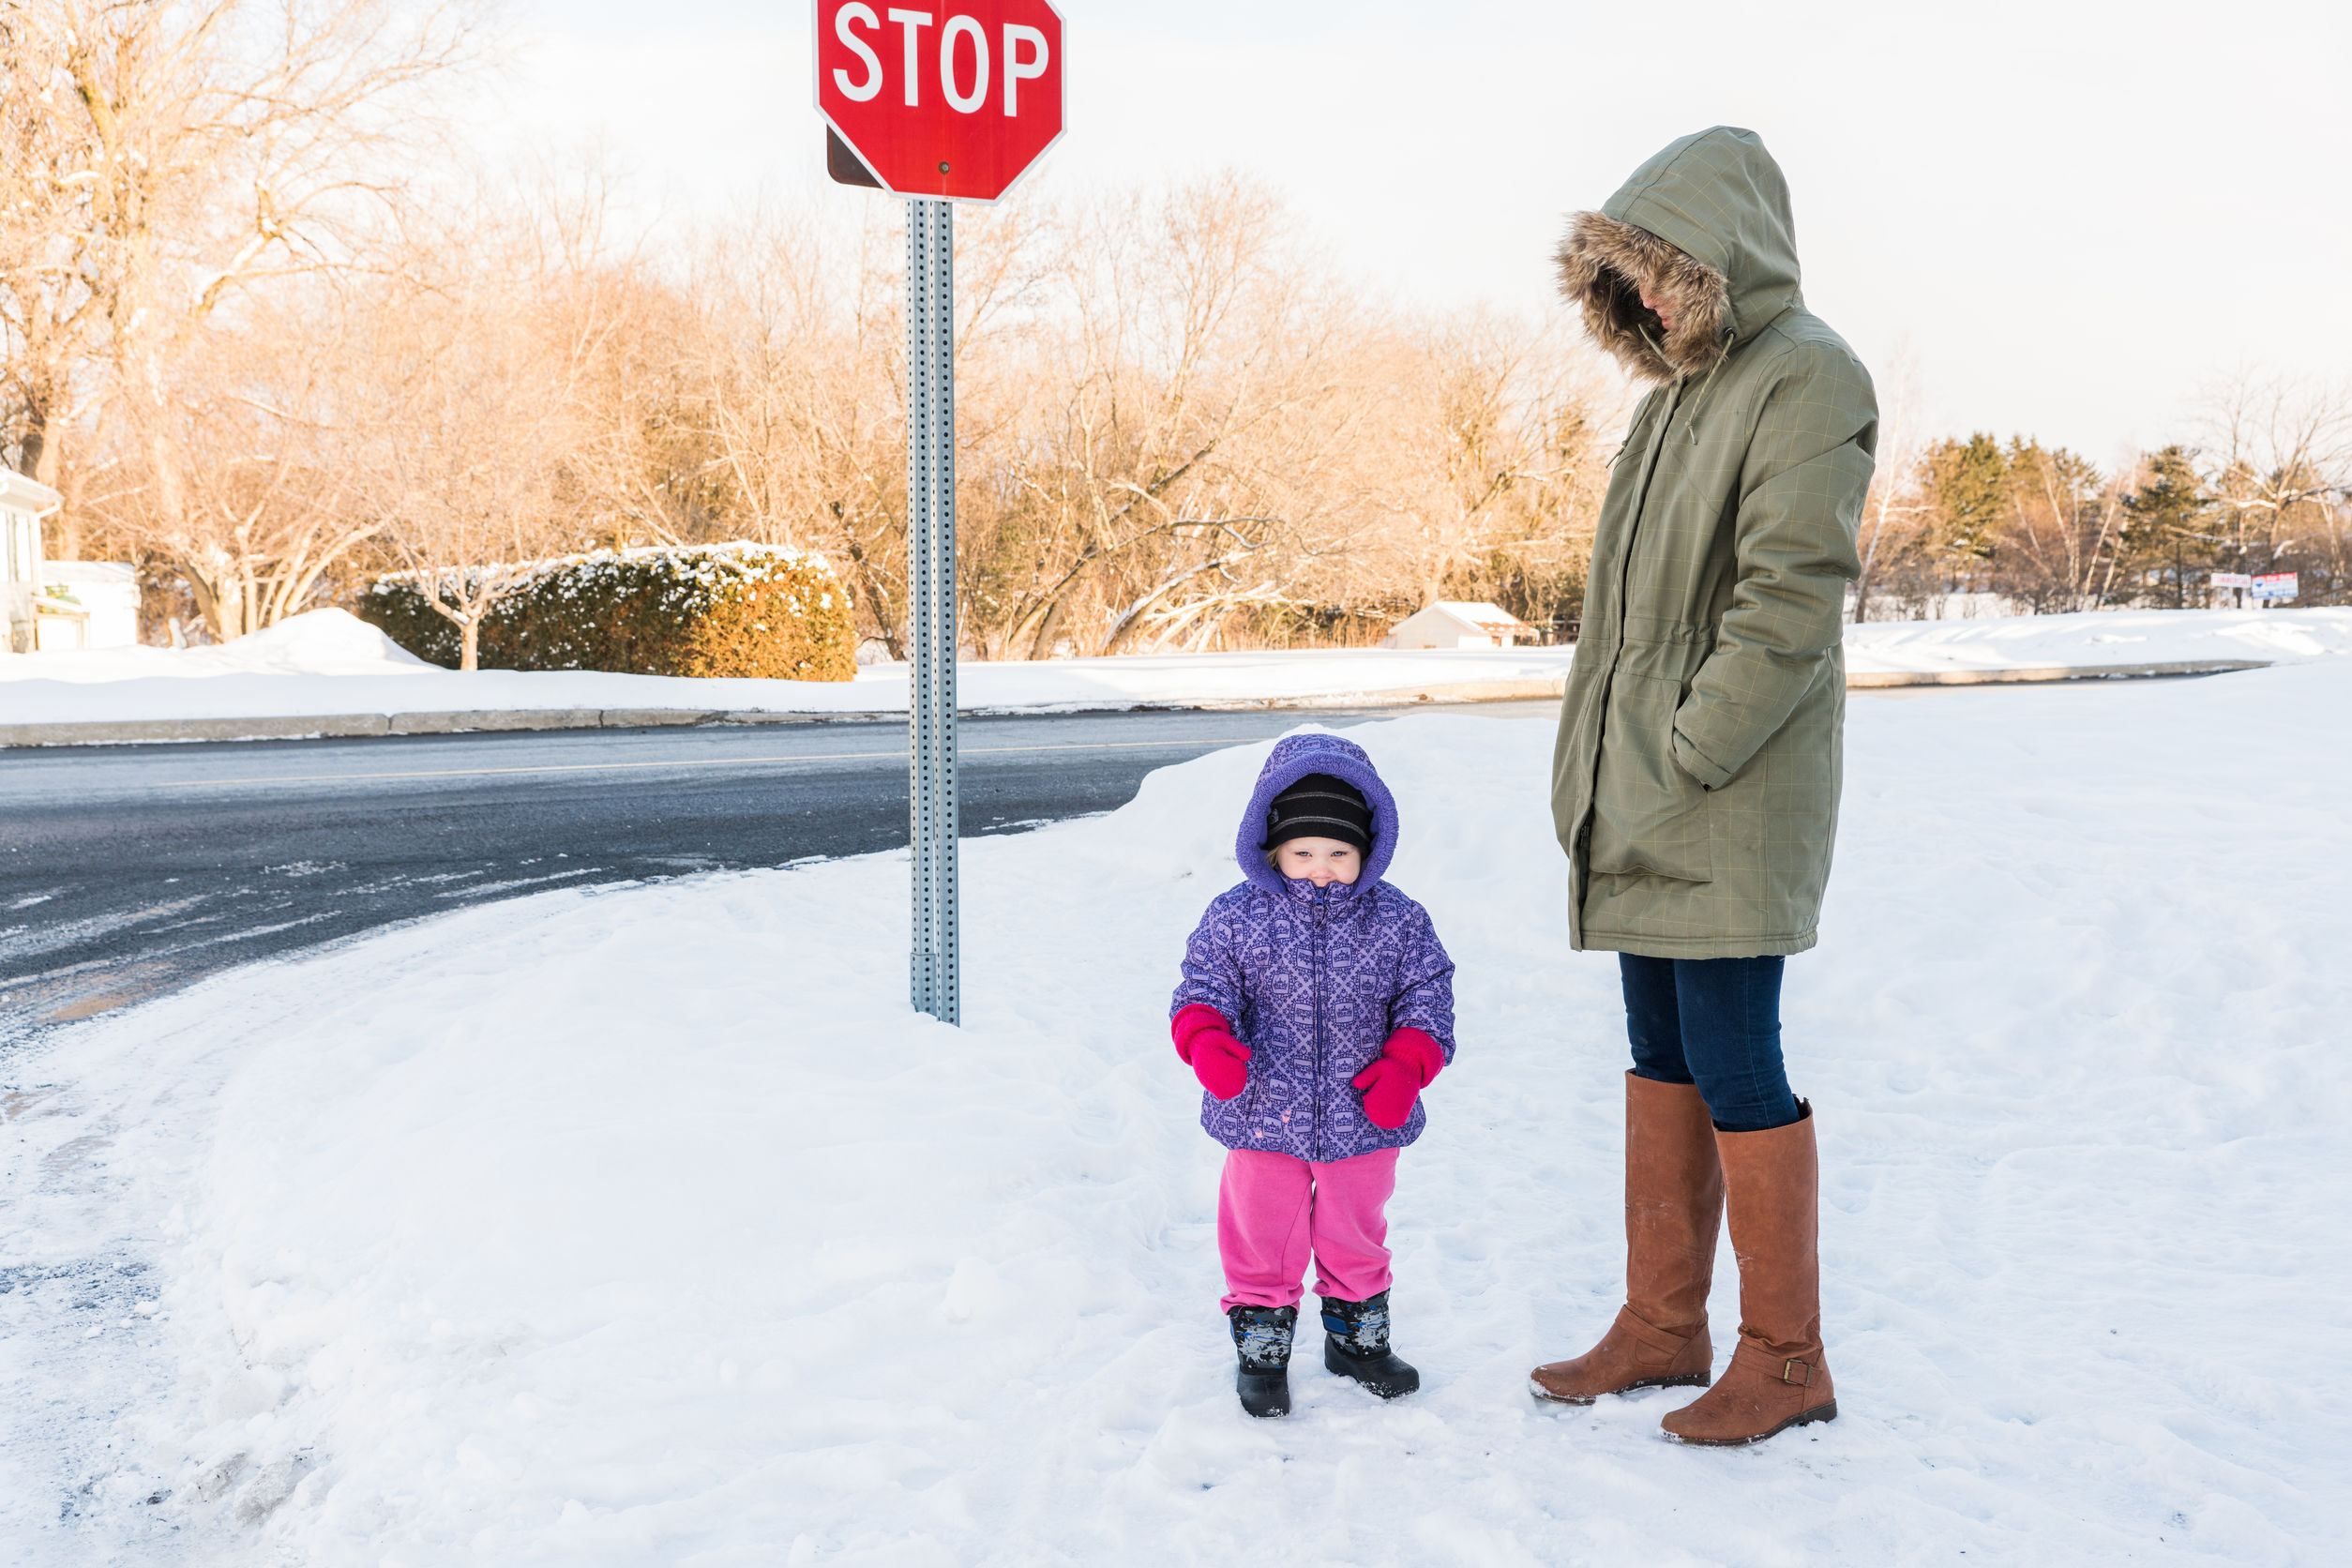 Child and parent in snow standing by a stop sign